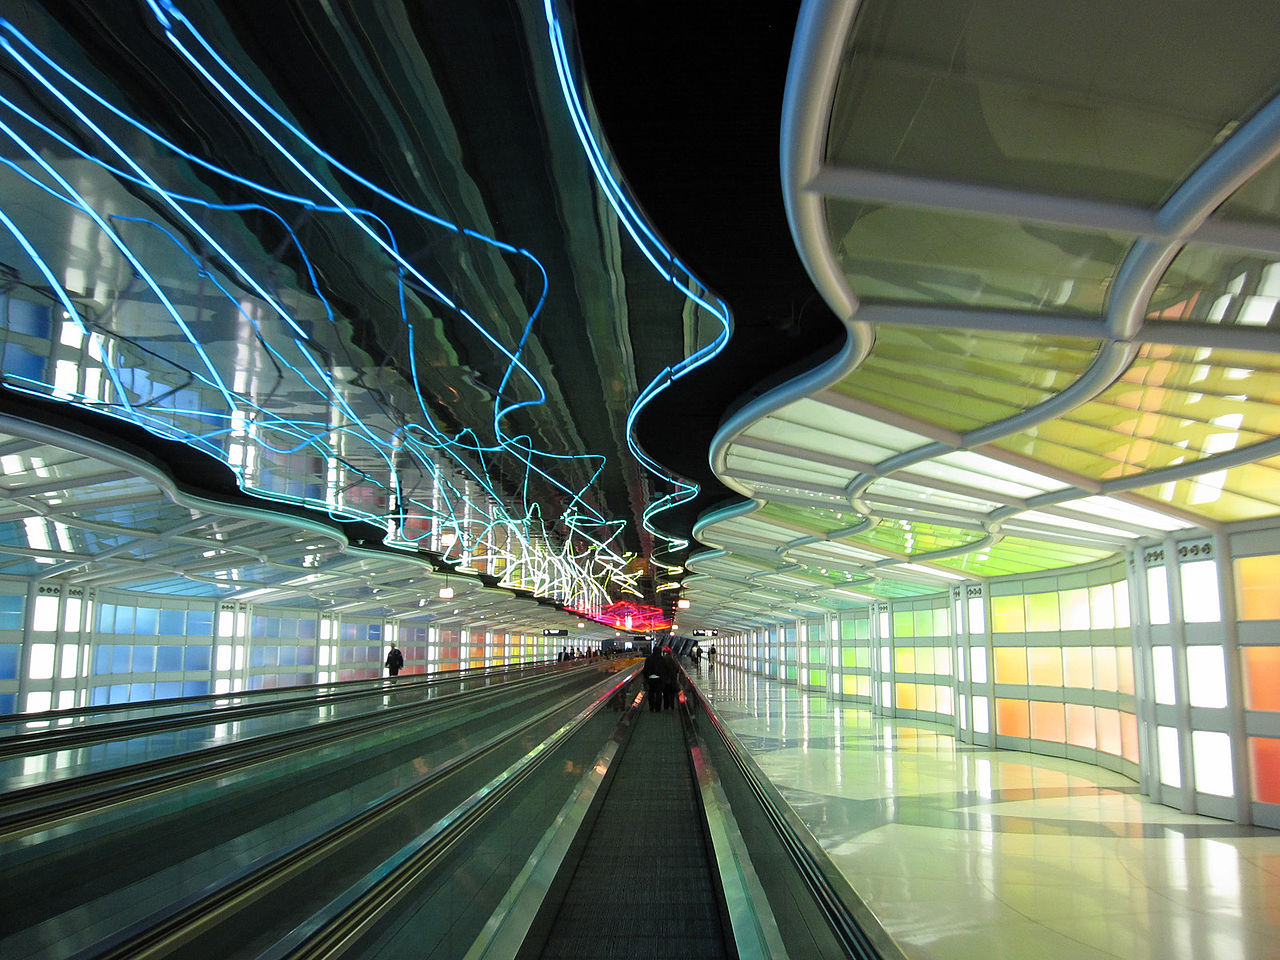 FileUnited Airlines Corridor Chicago OHare Airport